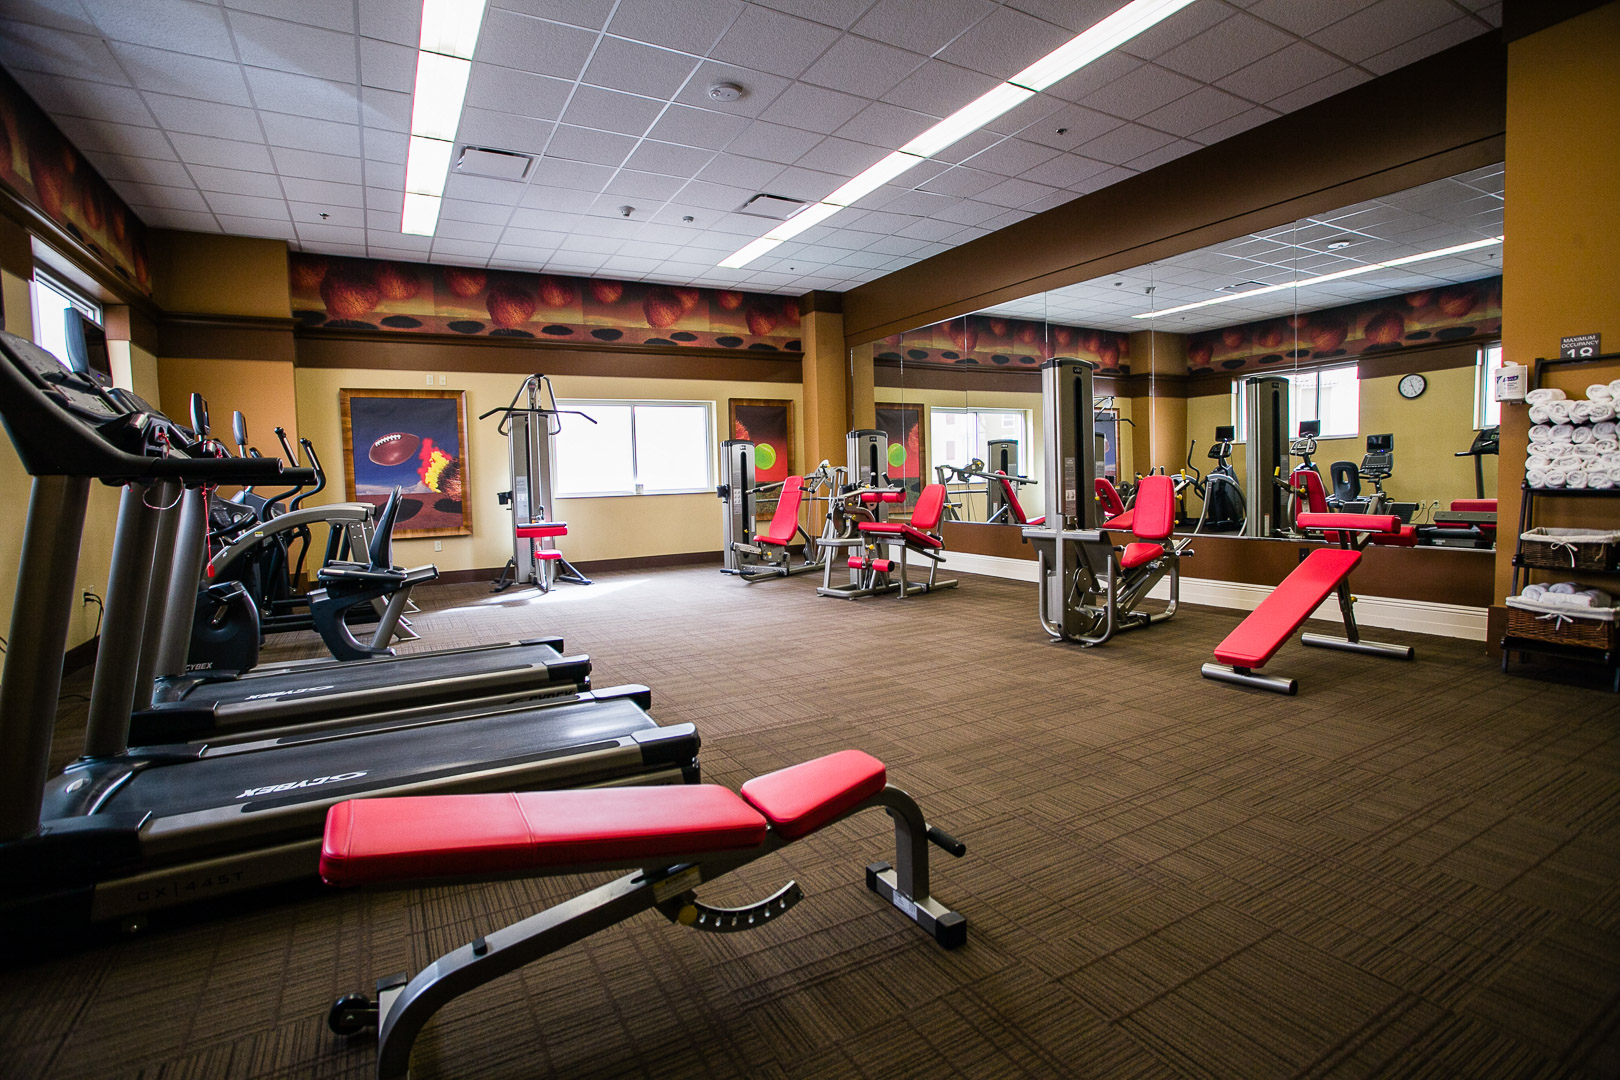 overton gym with treadmills, a bench, and several other machines